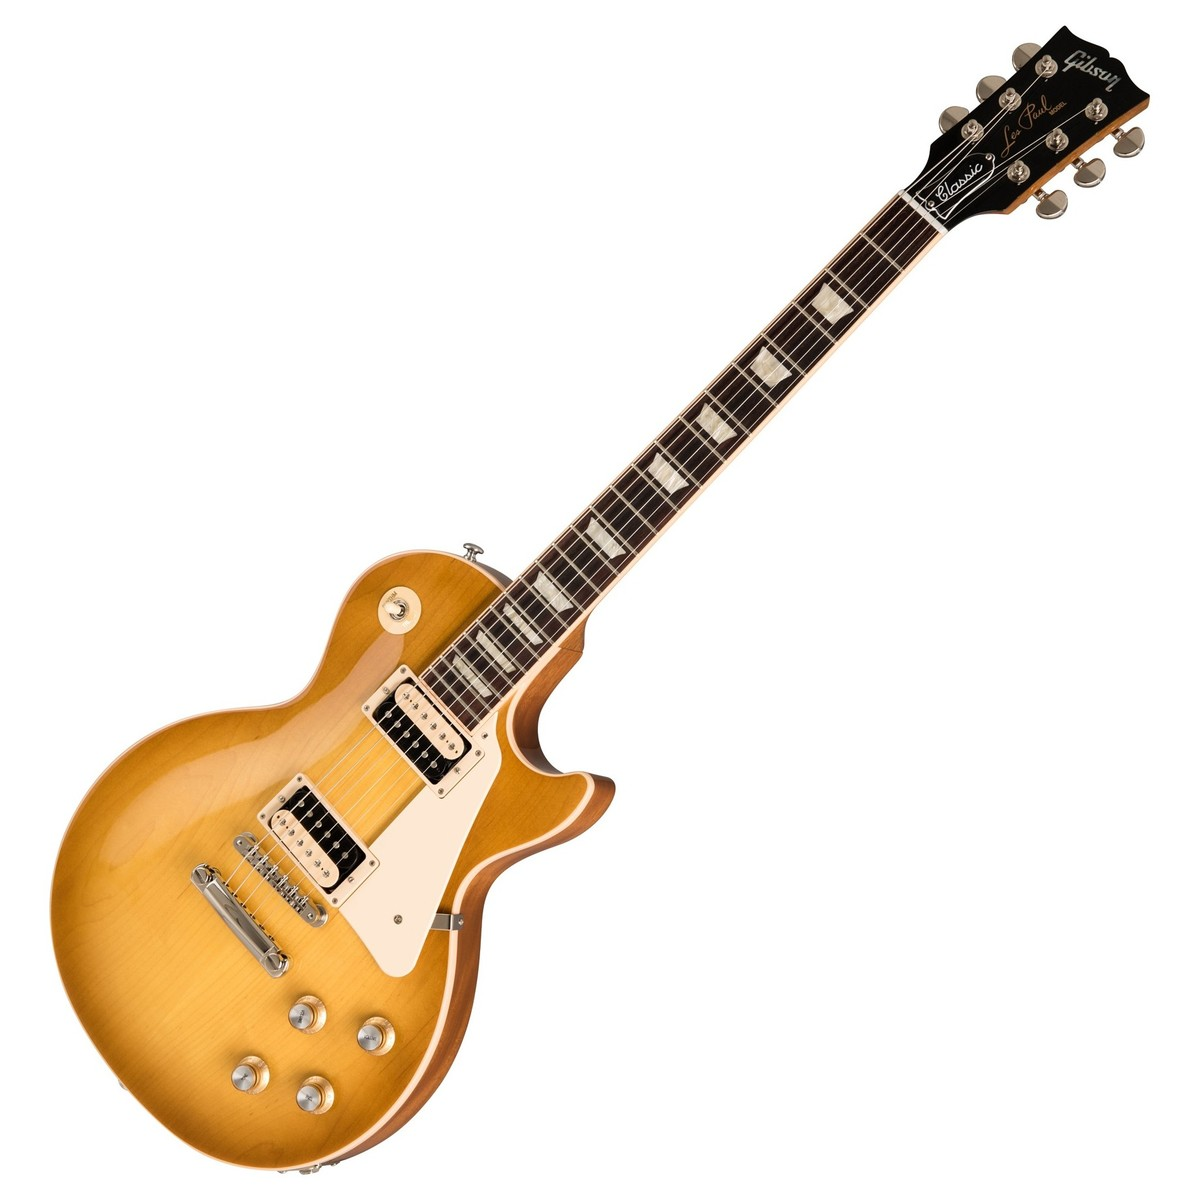 gibson les paul classic 2019 honeyburst at gear4music. Black Bedroom Furniture Sets. Home Design Ideas